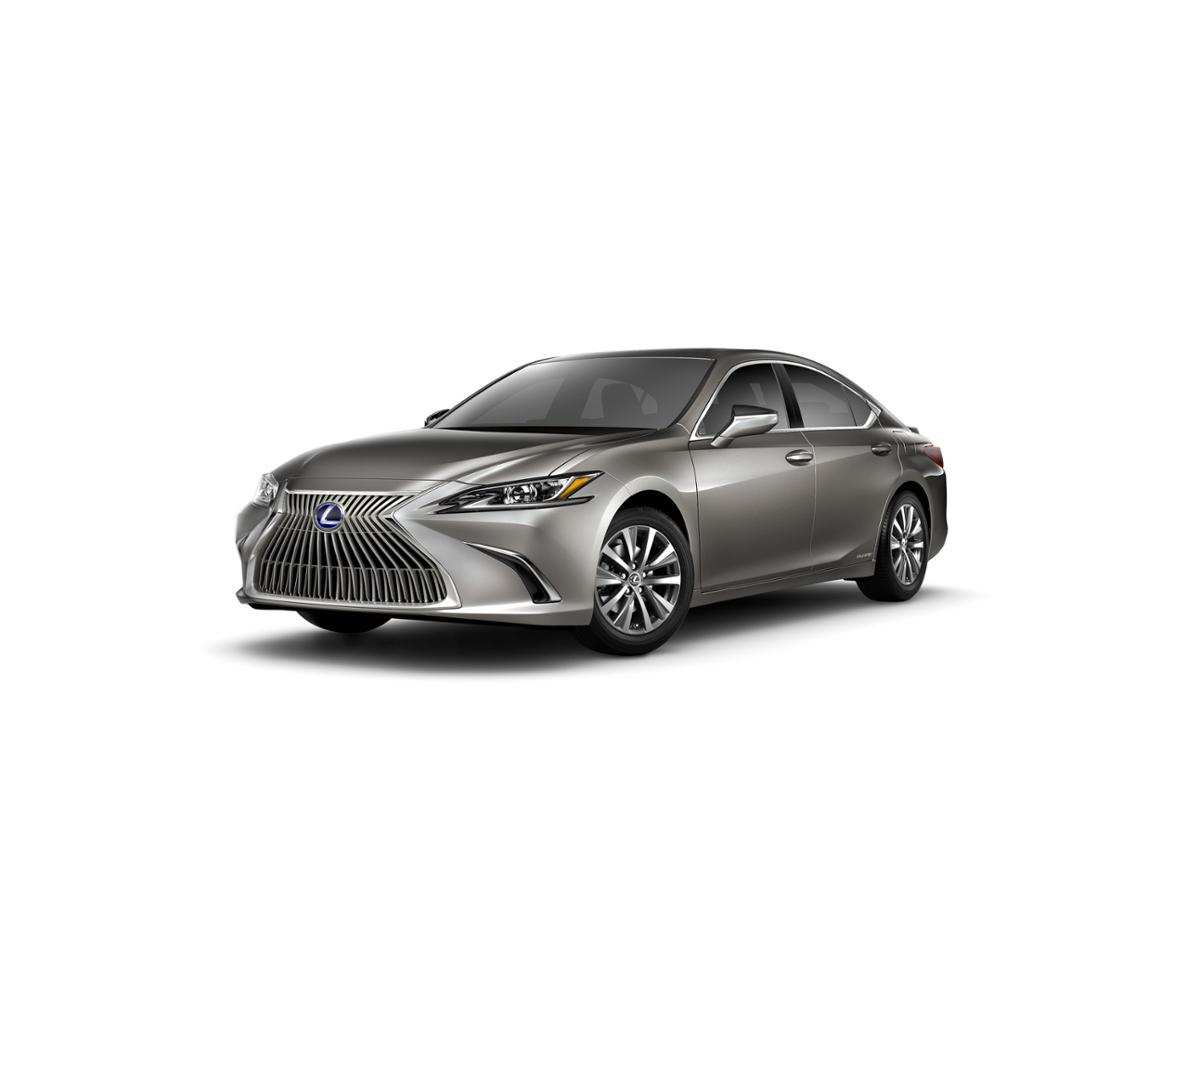 80 Gallery of When Will The 2019 Lexus Be Available New Engine Price by When Will The 2019 Lexus Be Available New Engine